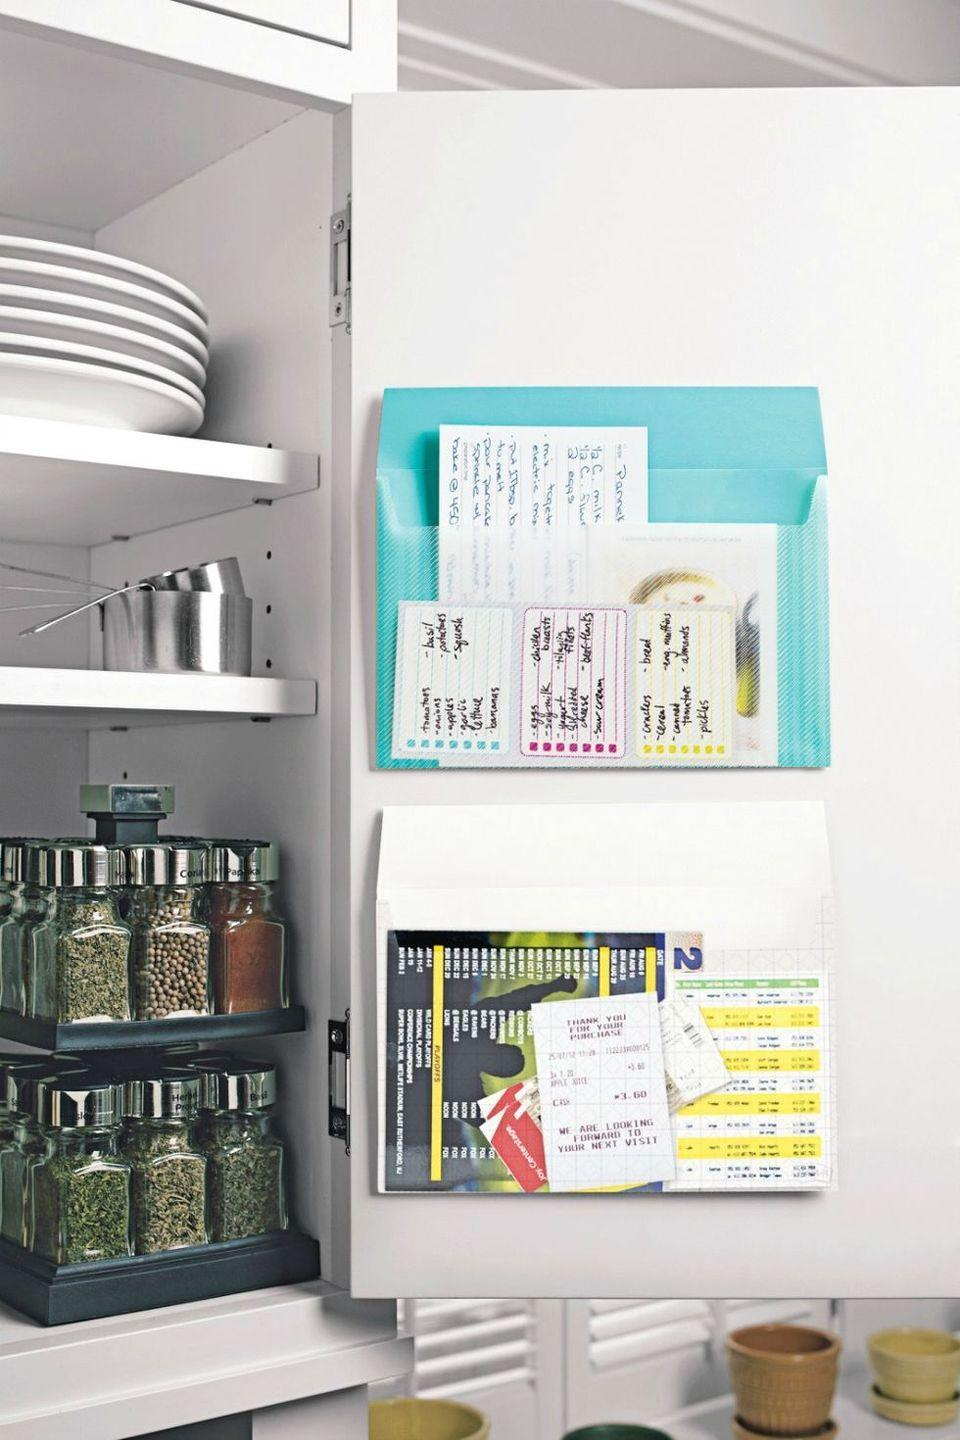 """<p>Stick adhesive pockets to the inside of your spice cabinet to keep all of your grocery lists, coupons, and recipes in one spot. Add a pen loop, so you don't have to go searching to jot something down. </p><p><a class=""""link rapid-noclick-resp"""" href=""""https://www.amazon.com/Smead-Self-Adhesive-Pocket-Variety-68167/dp/B0186KGEZK?tag=syn-yahoo-20&ascsubtag=%5Bartid%7C2164.g.35037072%5Bsrc%7Cyahoo-us"""" rel=""""nofollow noopener"""" target=""""_blank"""" data-ylk=""""slk:SHOP ADHESIVE POCKETS"""">SHOP ADHESIVE POCKETS</a></p>"""